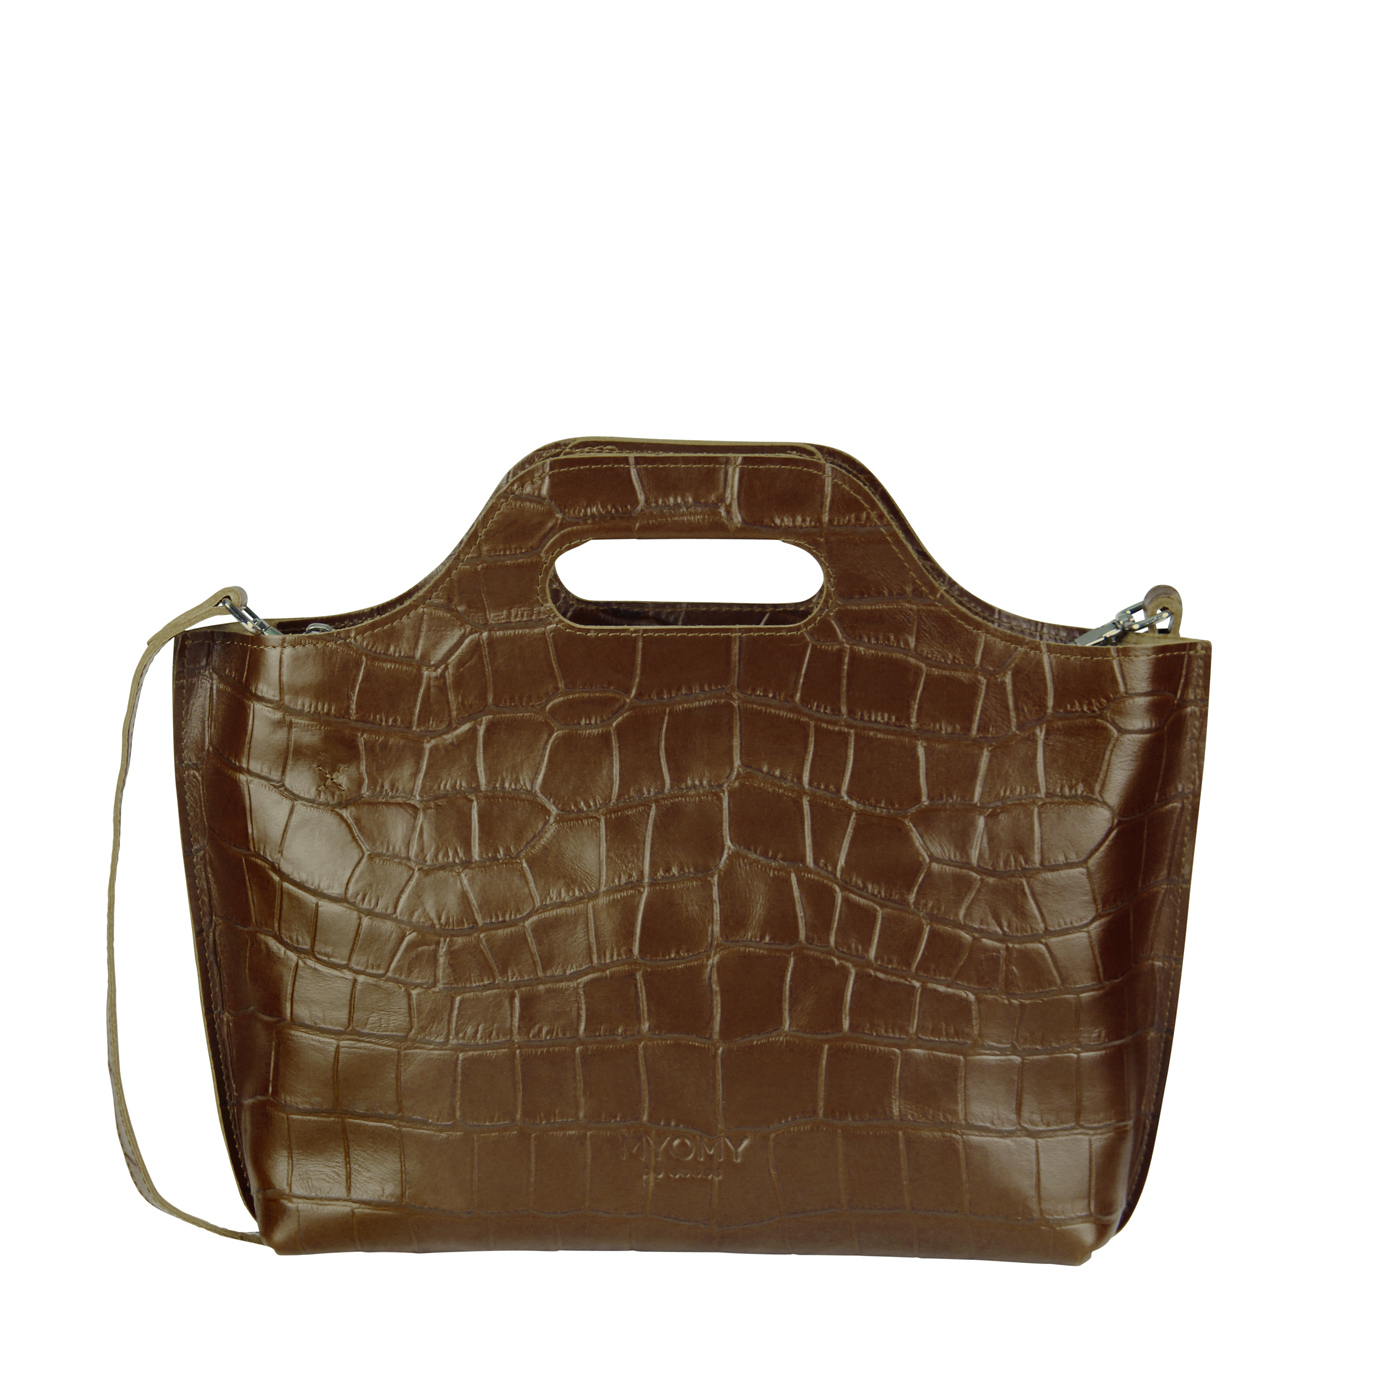 MY CARRY BAG Handbag - croco original